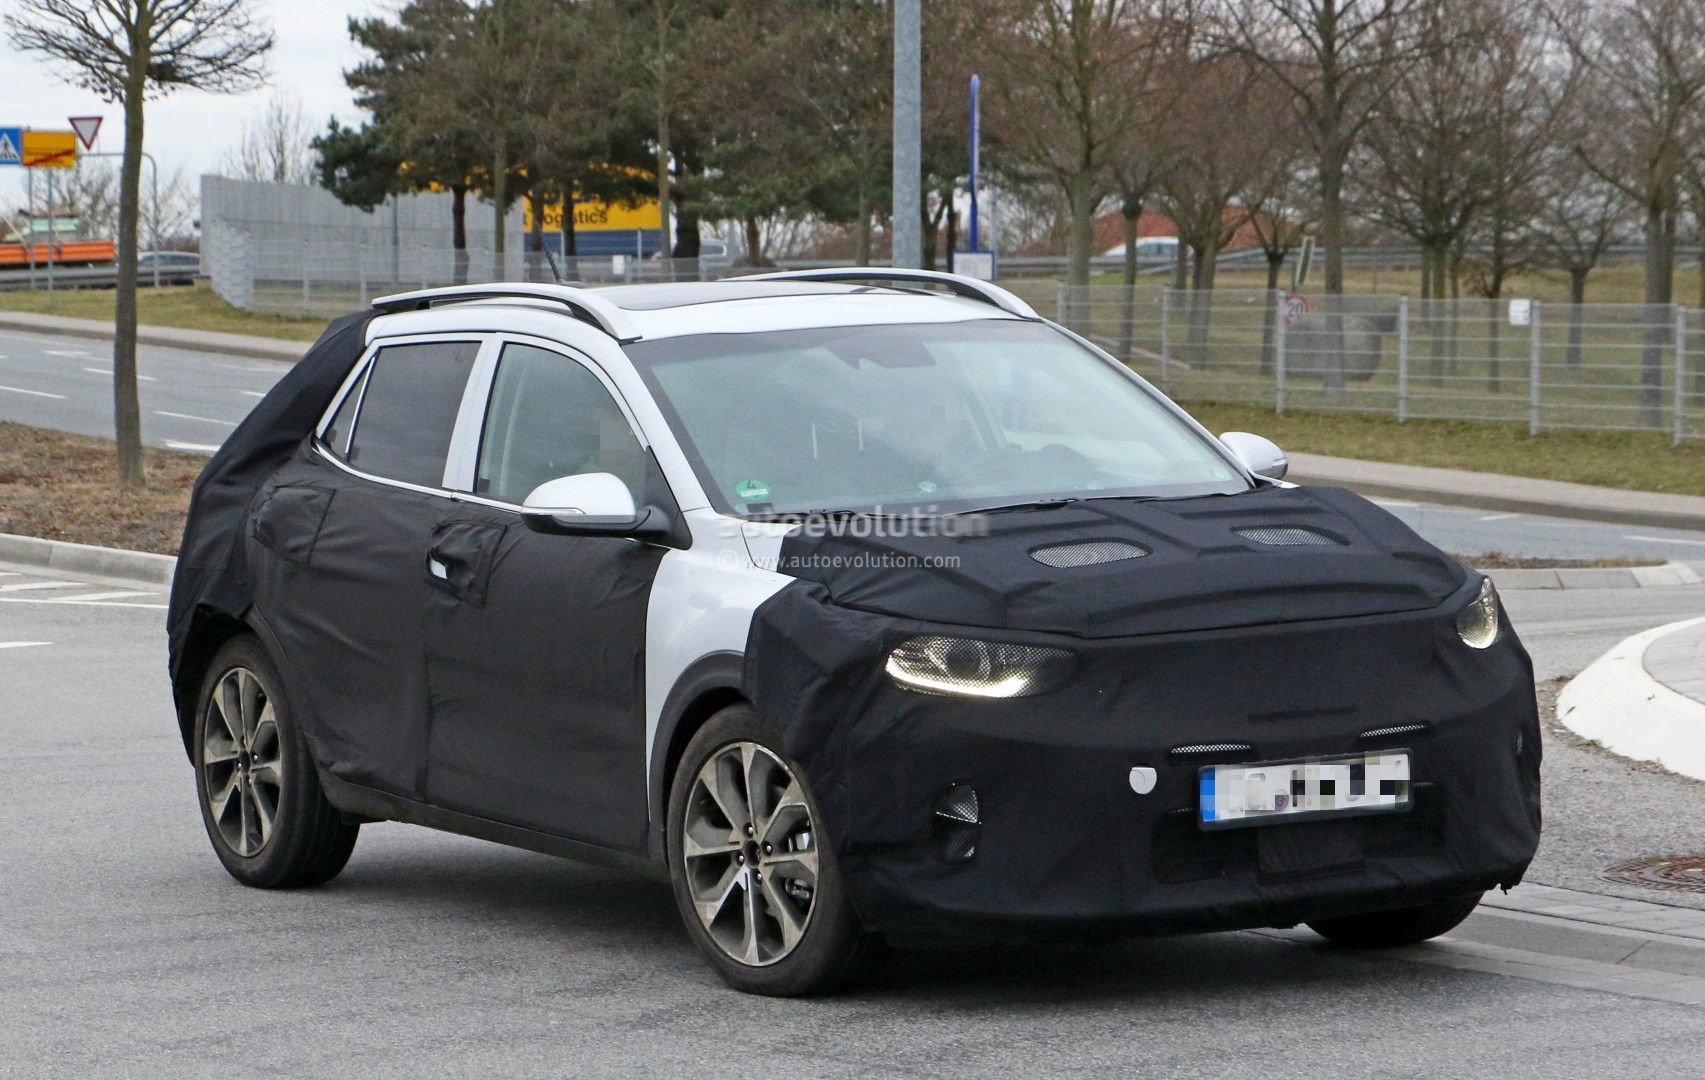 2017 - [Kia] Stonic 2018-kia-stonic-spied-up-close-in-germany-shows-sexy-production-lights_4